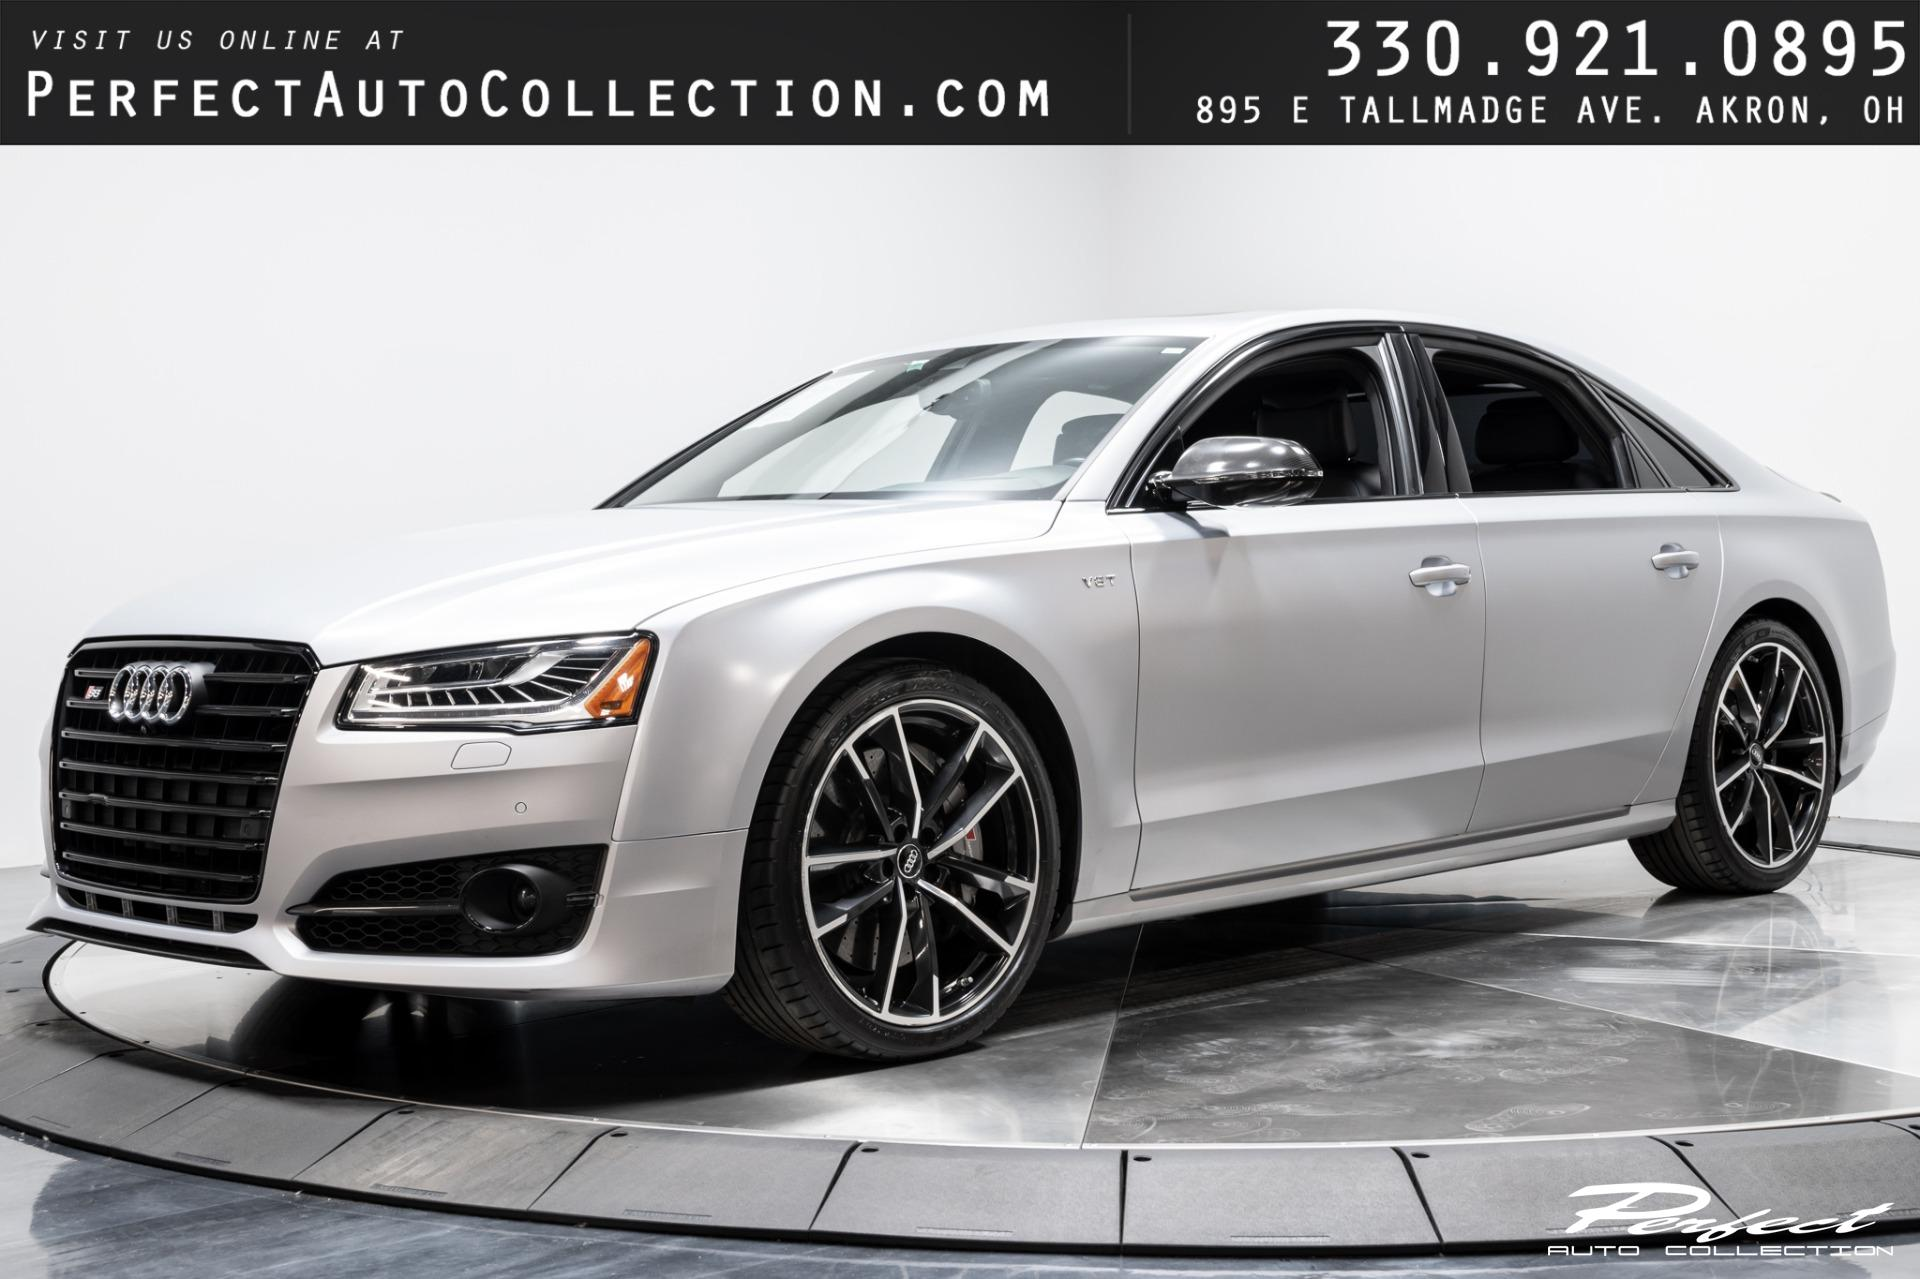 Used 2016 Audi S8 Plus 4.0T Quattro for sale $61,793 at Perfect Auto Collection in Akron OH 44310 1